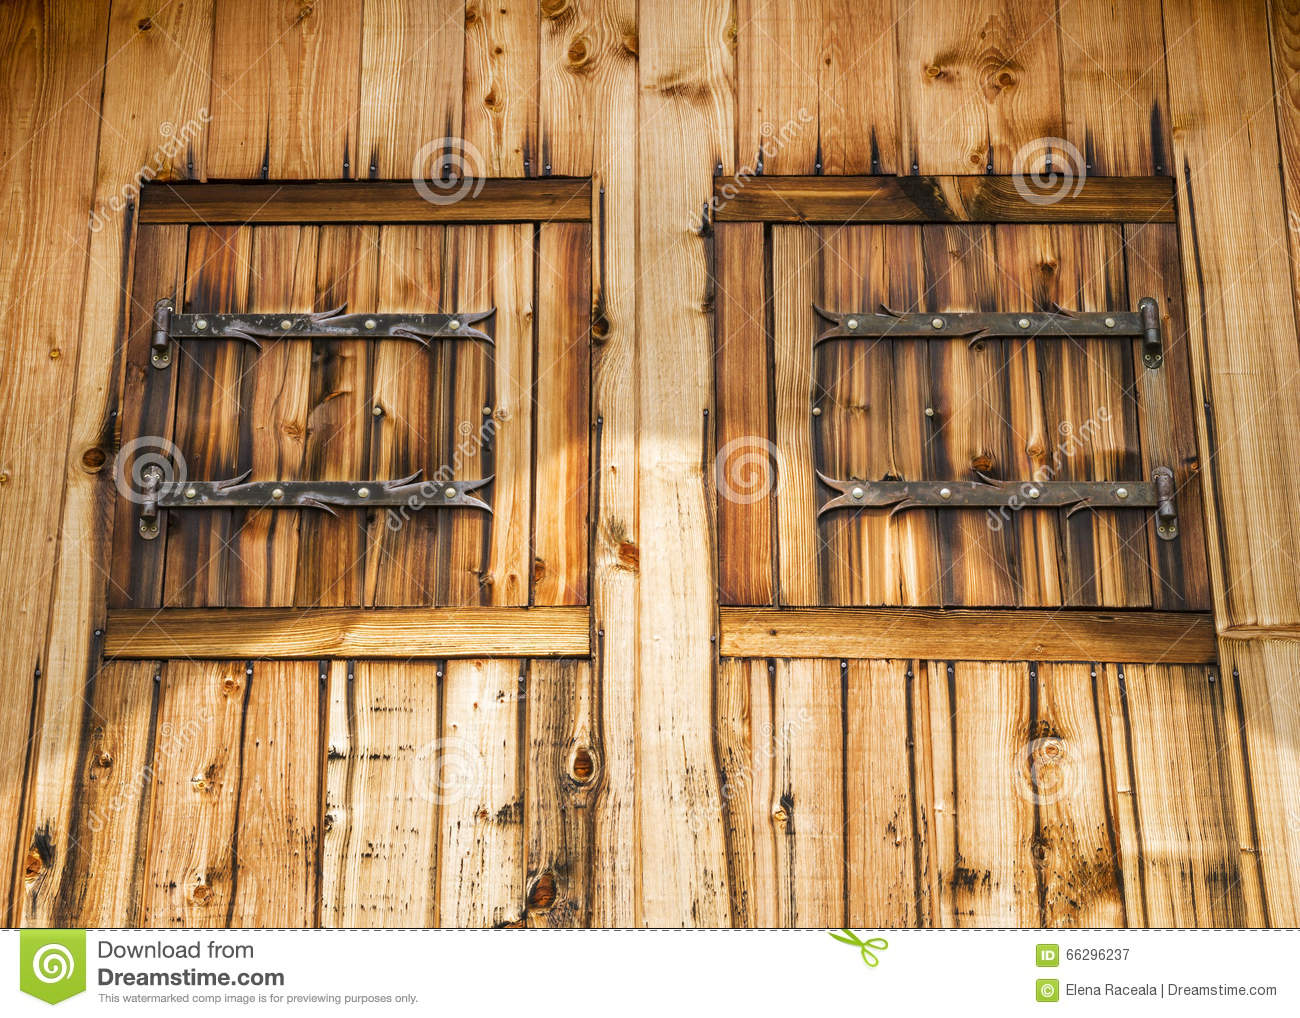 Rustic facade of a wooden house with wooden shutters stock for Rustic wood homes